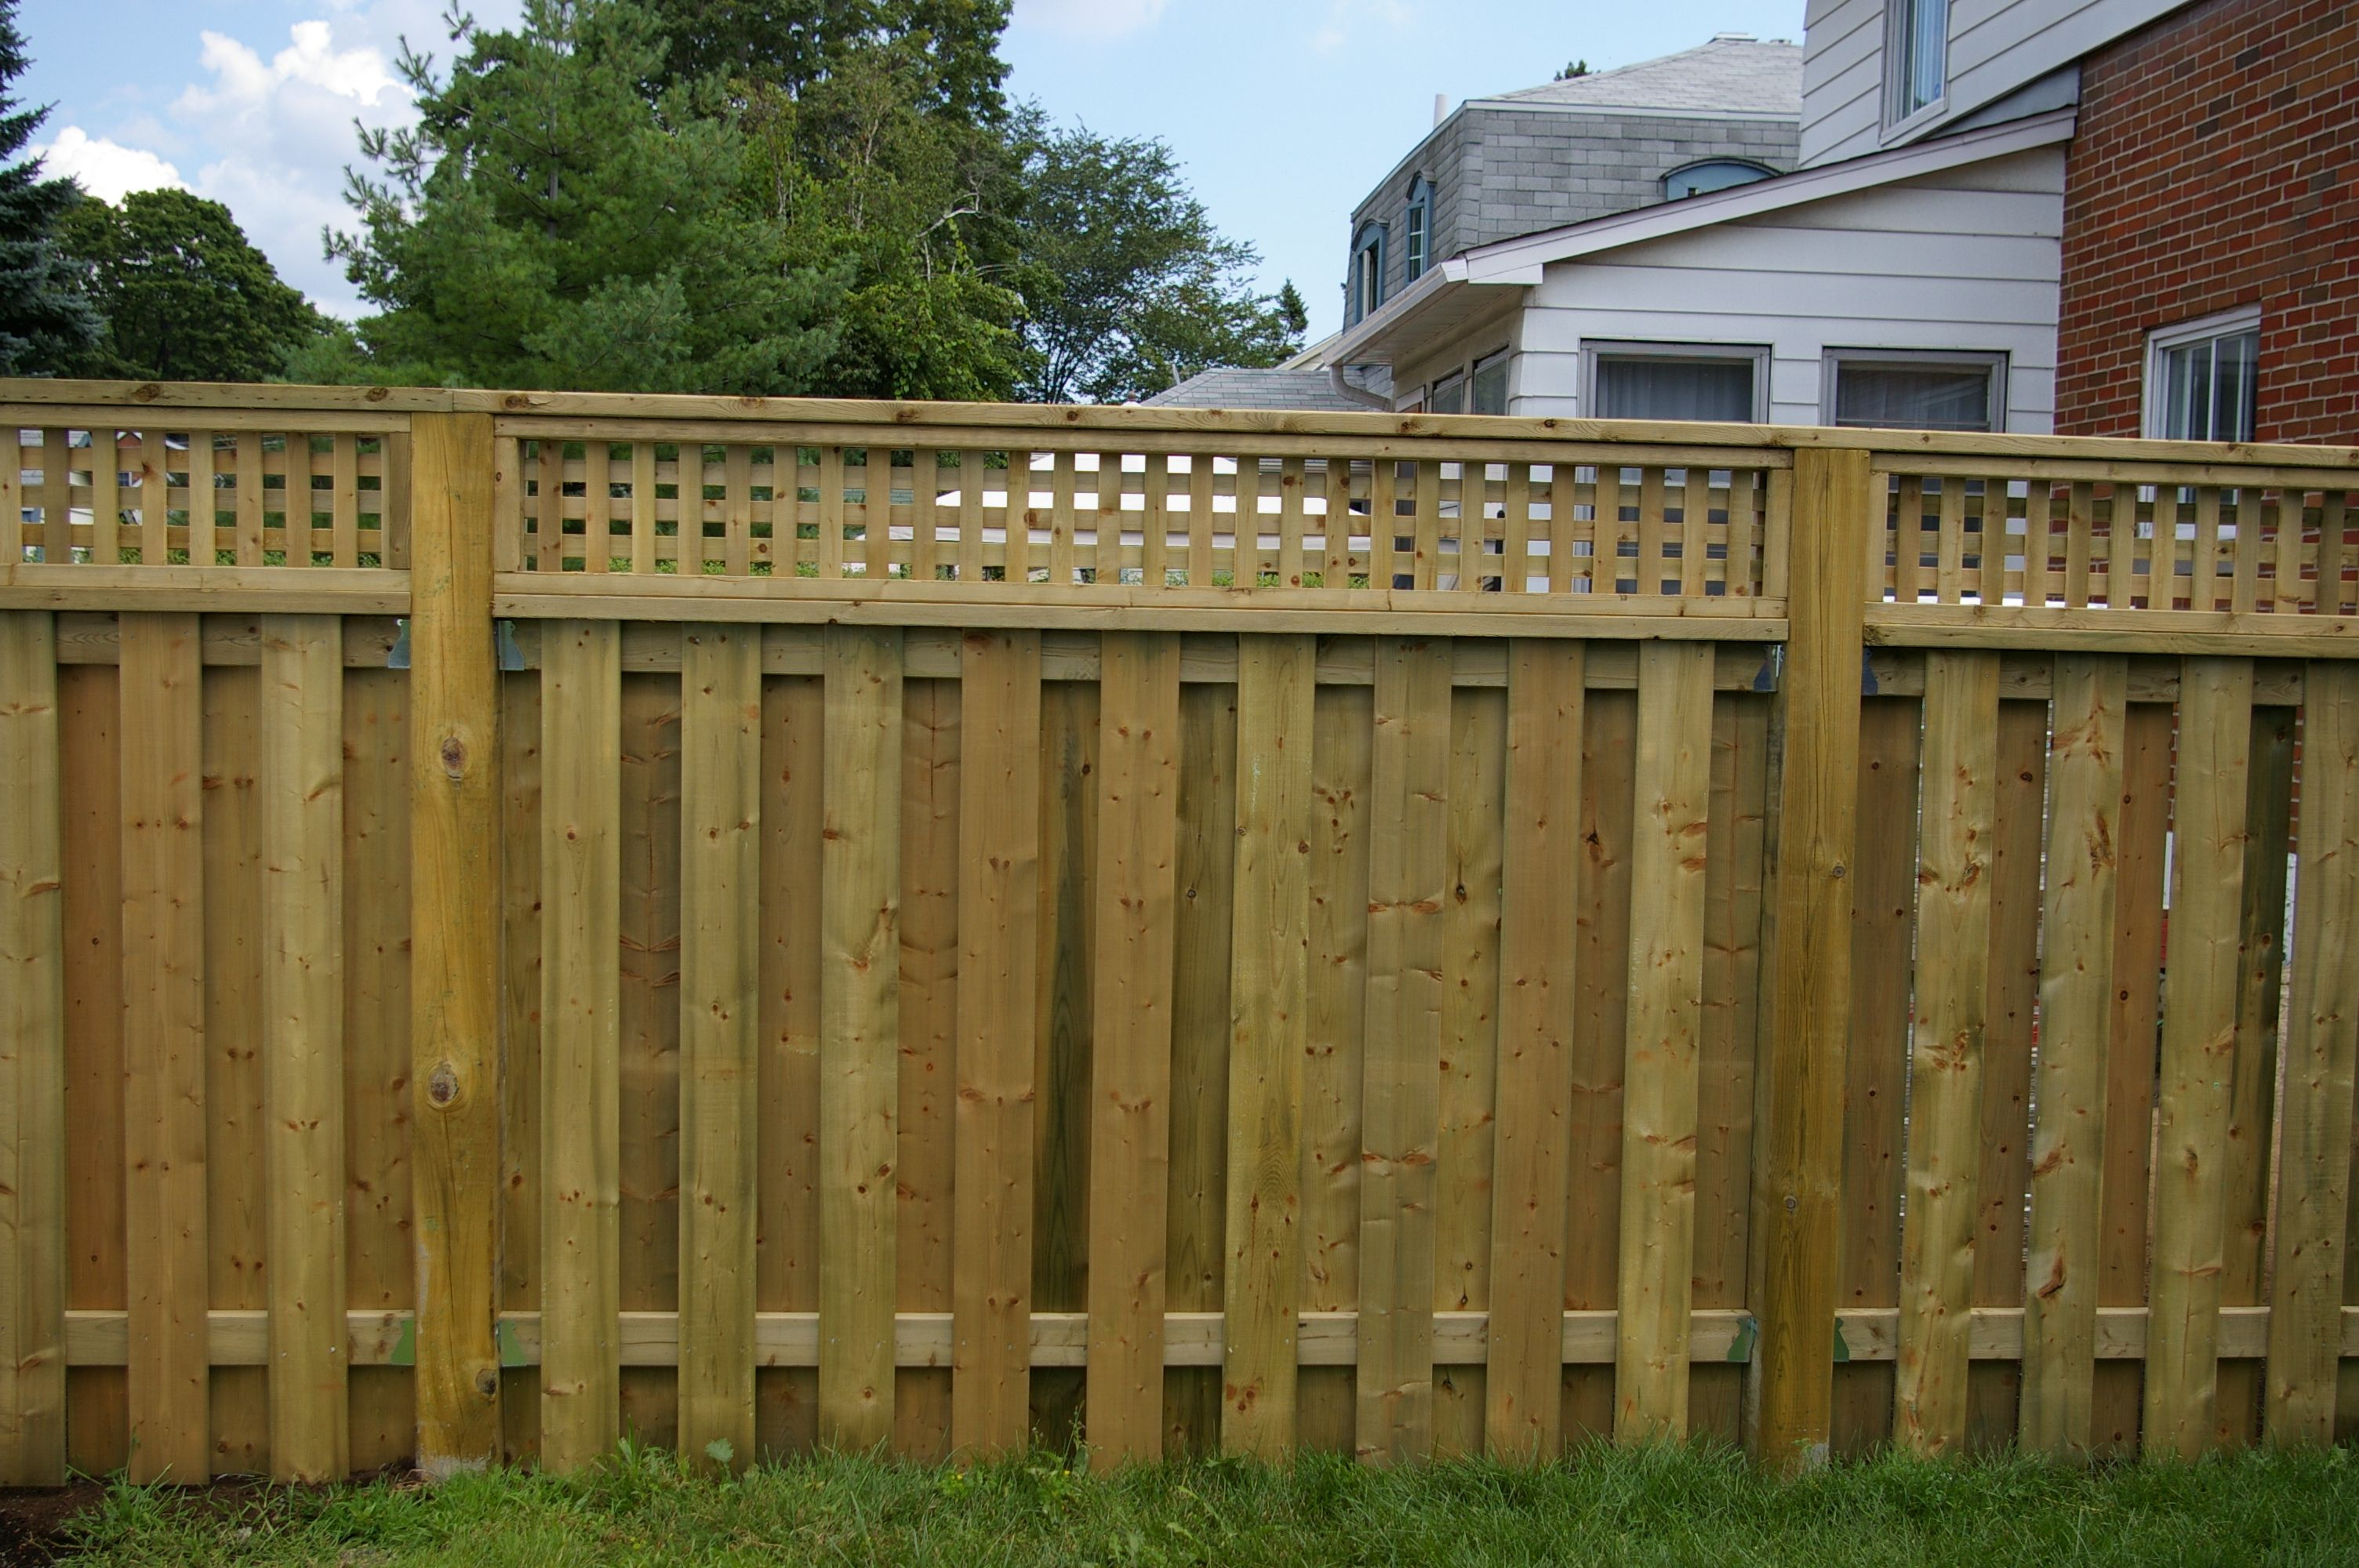 Types Of Wood Fences For Homes Fence Ideas Site inside Types Of Wood Fences For Backyard